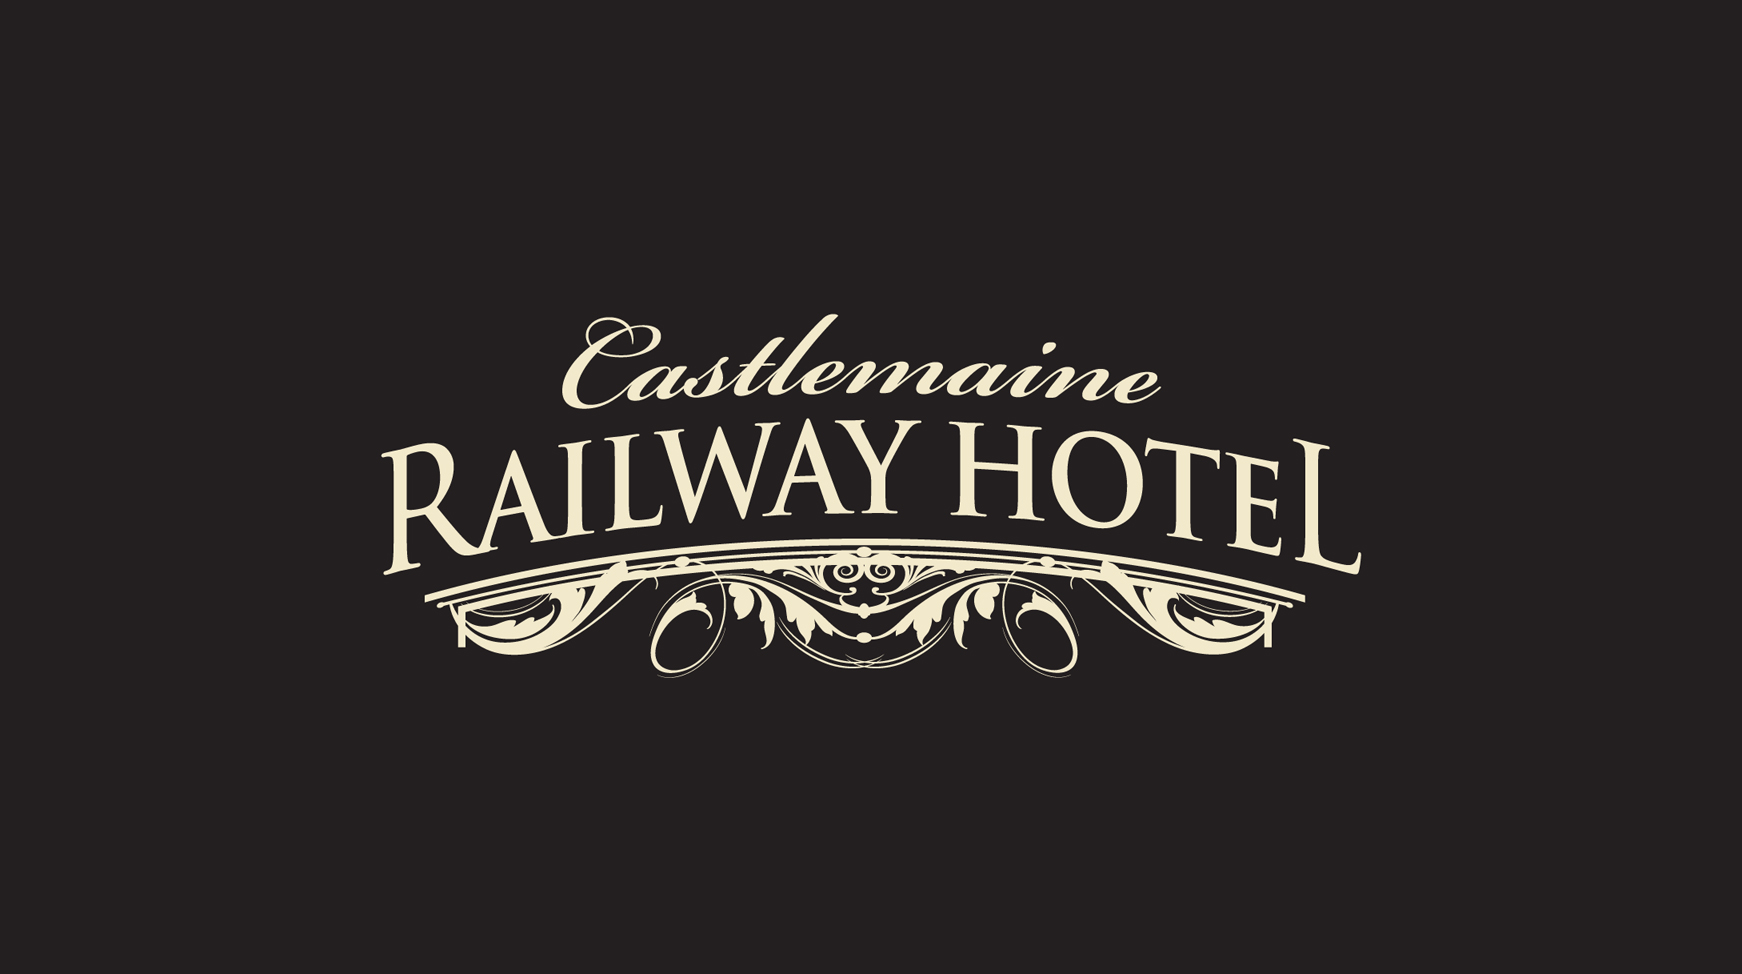 Railway Hotel Castlemaine - Accommodation Coffs Harbour